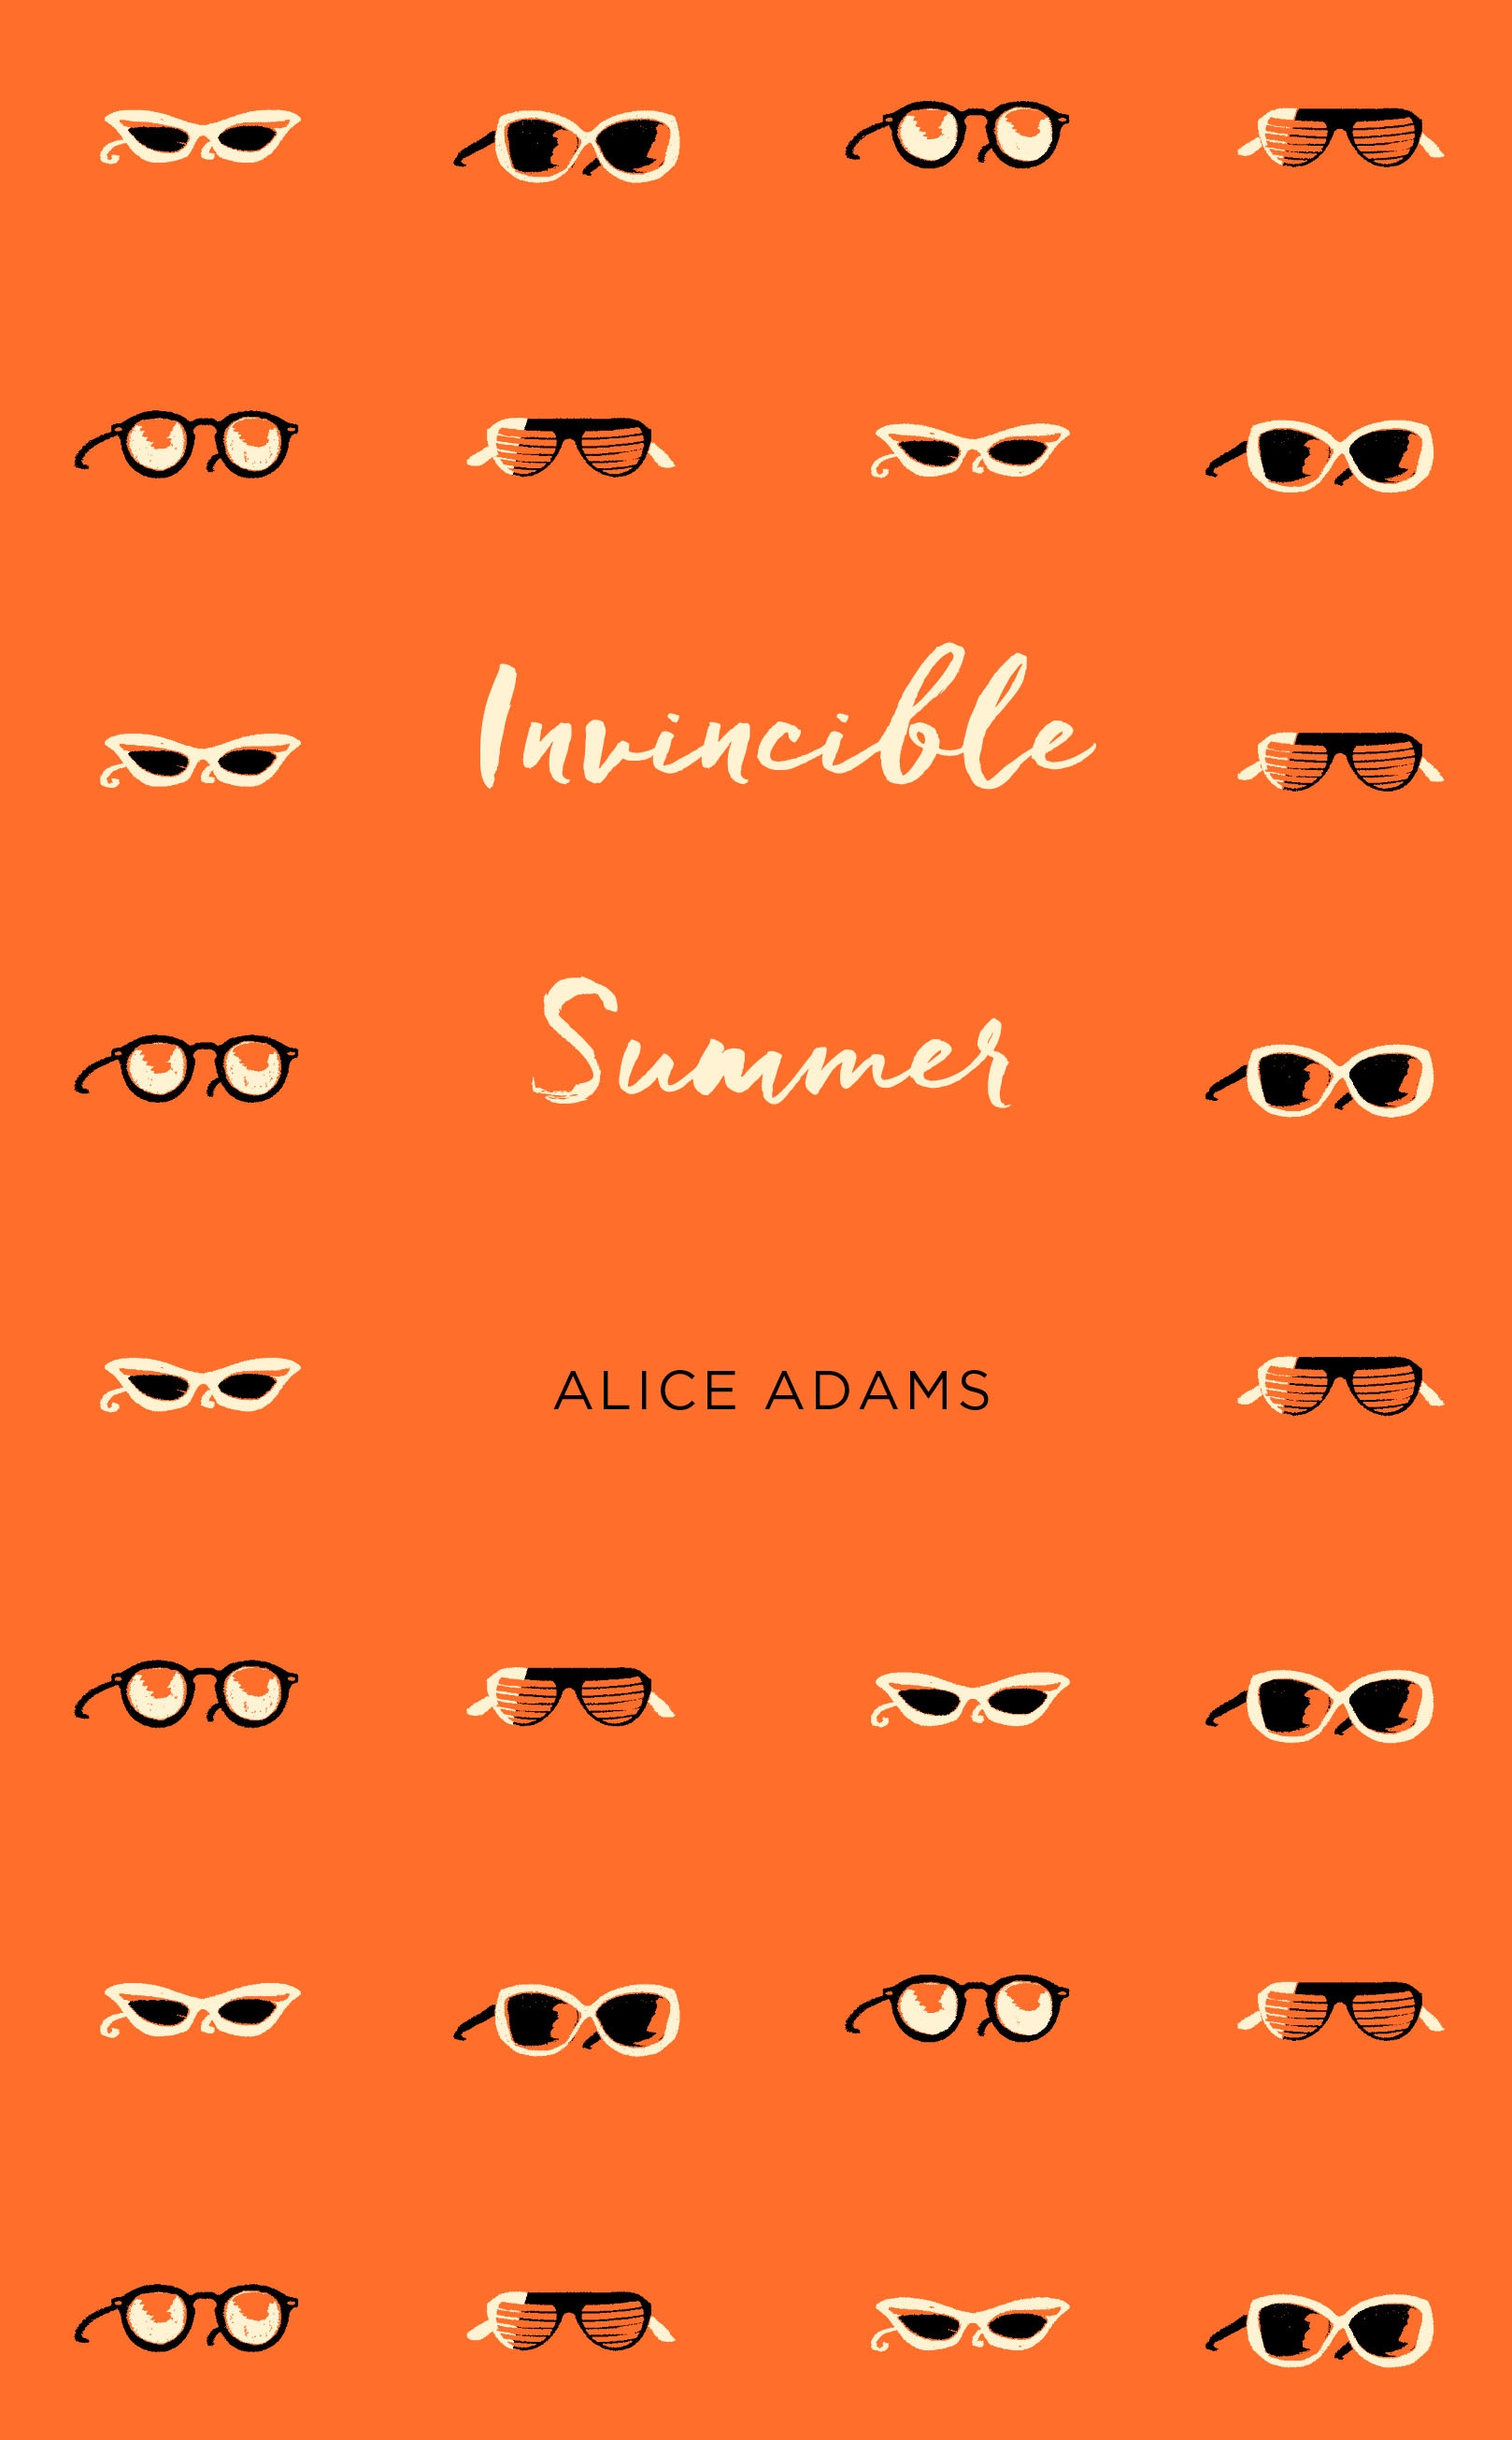 Invincible Summer by Alice Adams, ISBN: 9781509814718